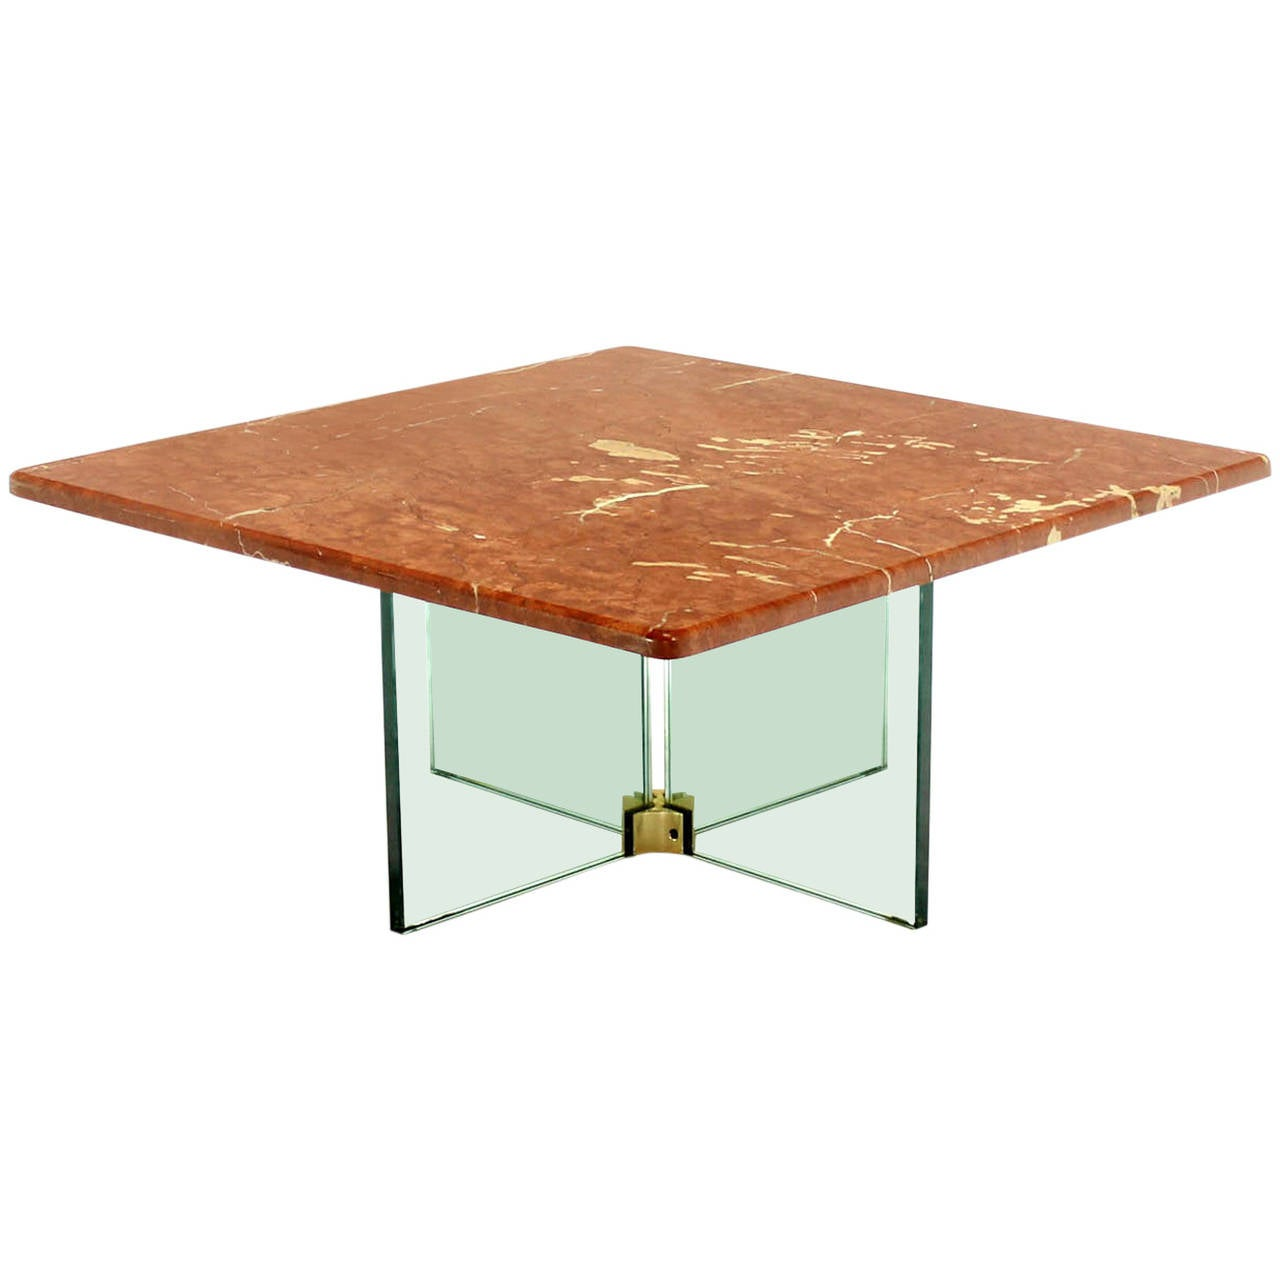 Coffee Table Bases For Marble Tops: Oval Shaped Glass Top Coffee Table With Chrome Base For